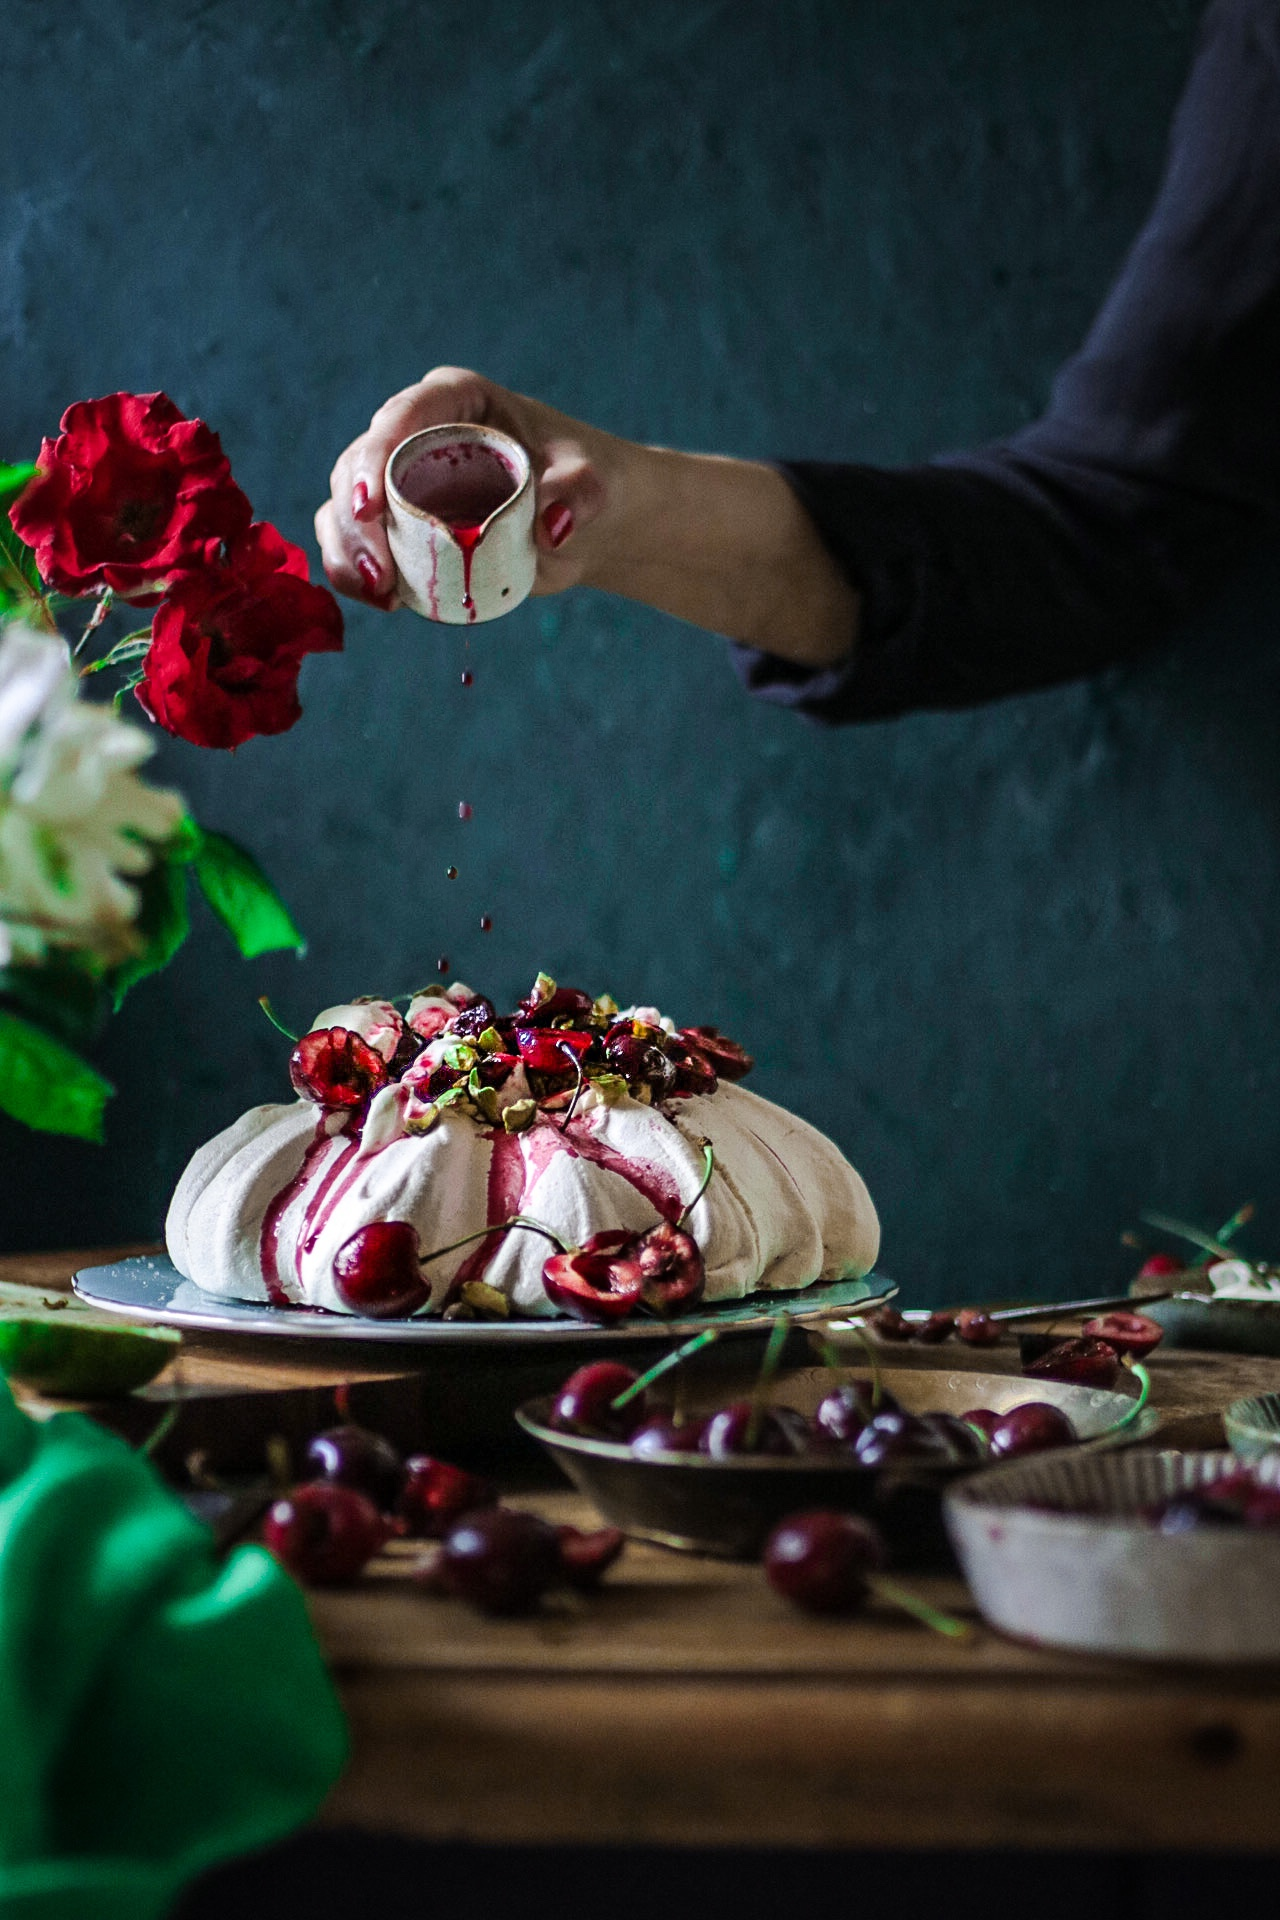 This is a stunning summer dessert recipe for  meringuewith poached cherries, whipped cream and pistachios. This is a gorgeous dessert for  summer picnics and celebrations!  Get baking now!